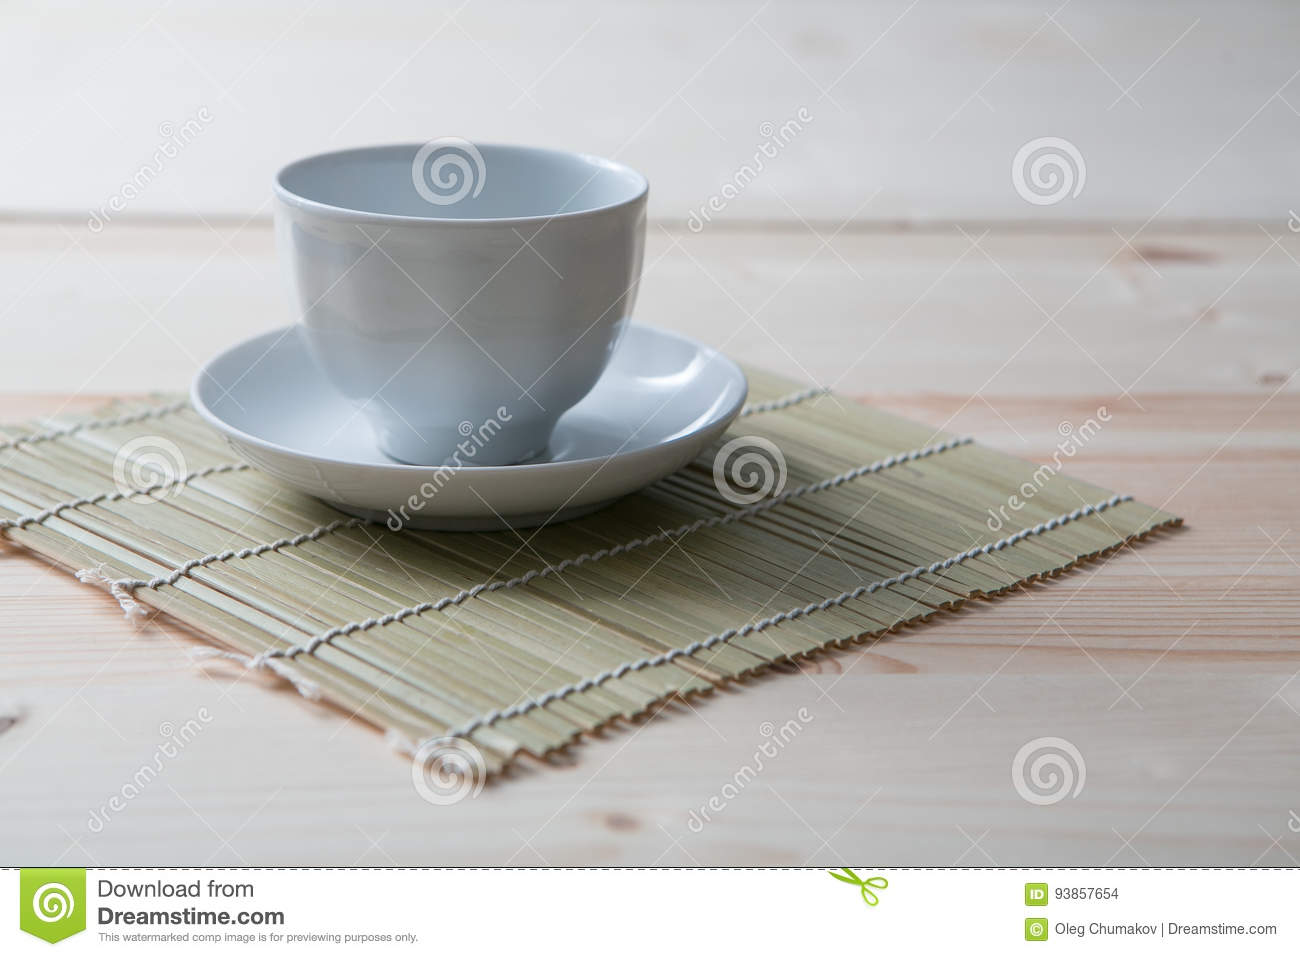 One Pure White Ceramic Cup And Saucer Stands On A Wooden Table Stock